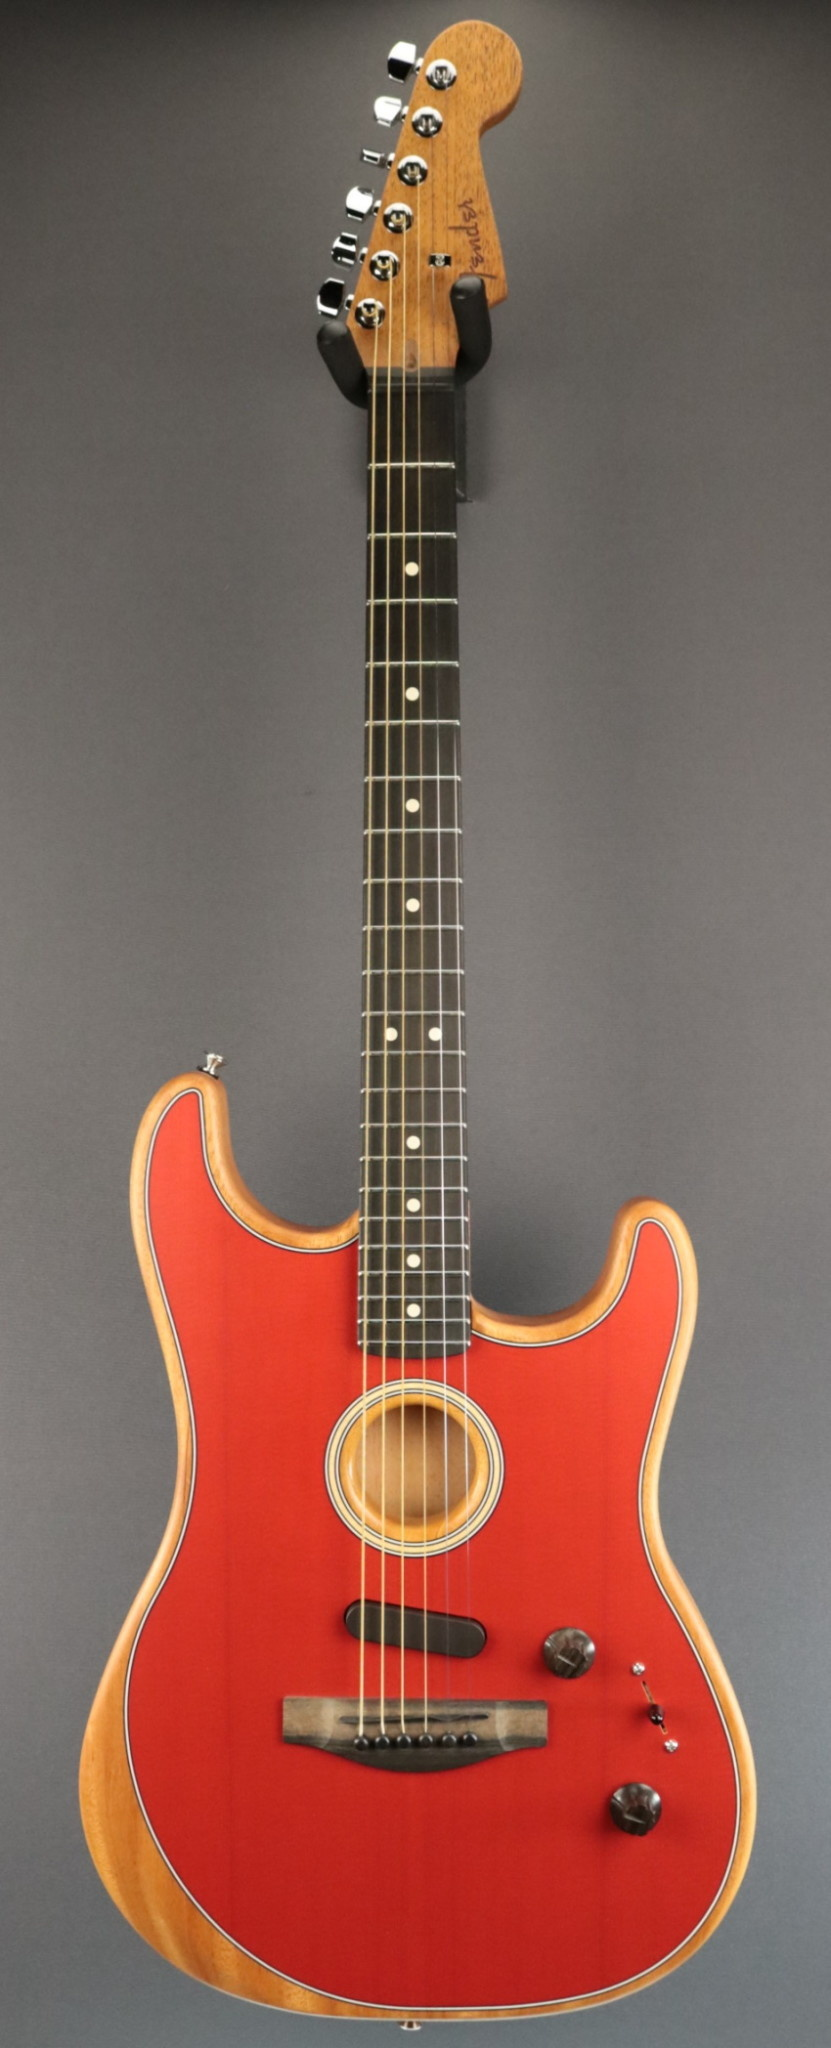 Fender NEW Fender American Acoustasonic Strat - Dakota Red (221)